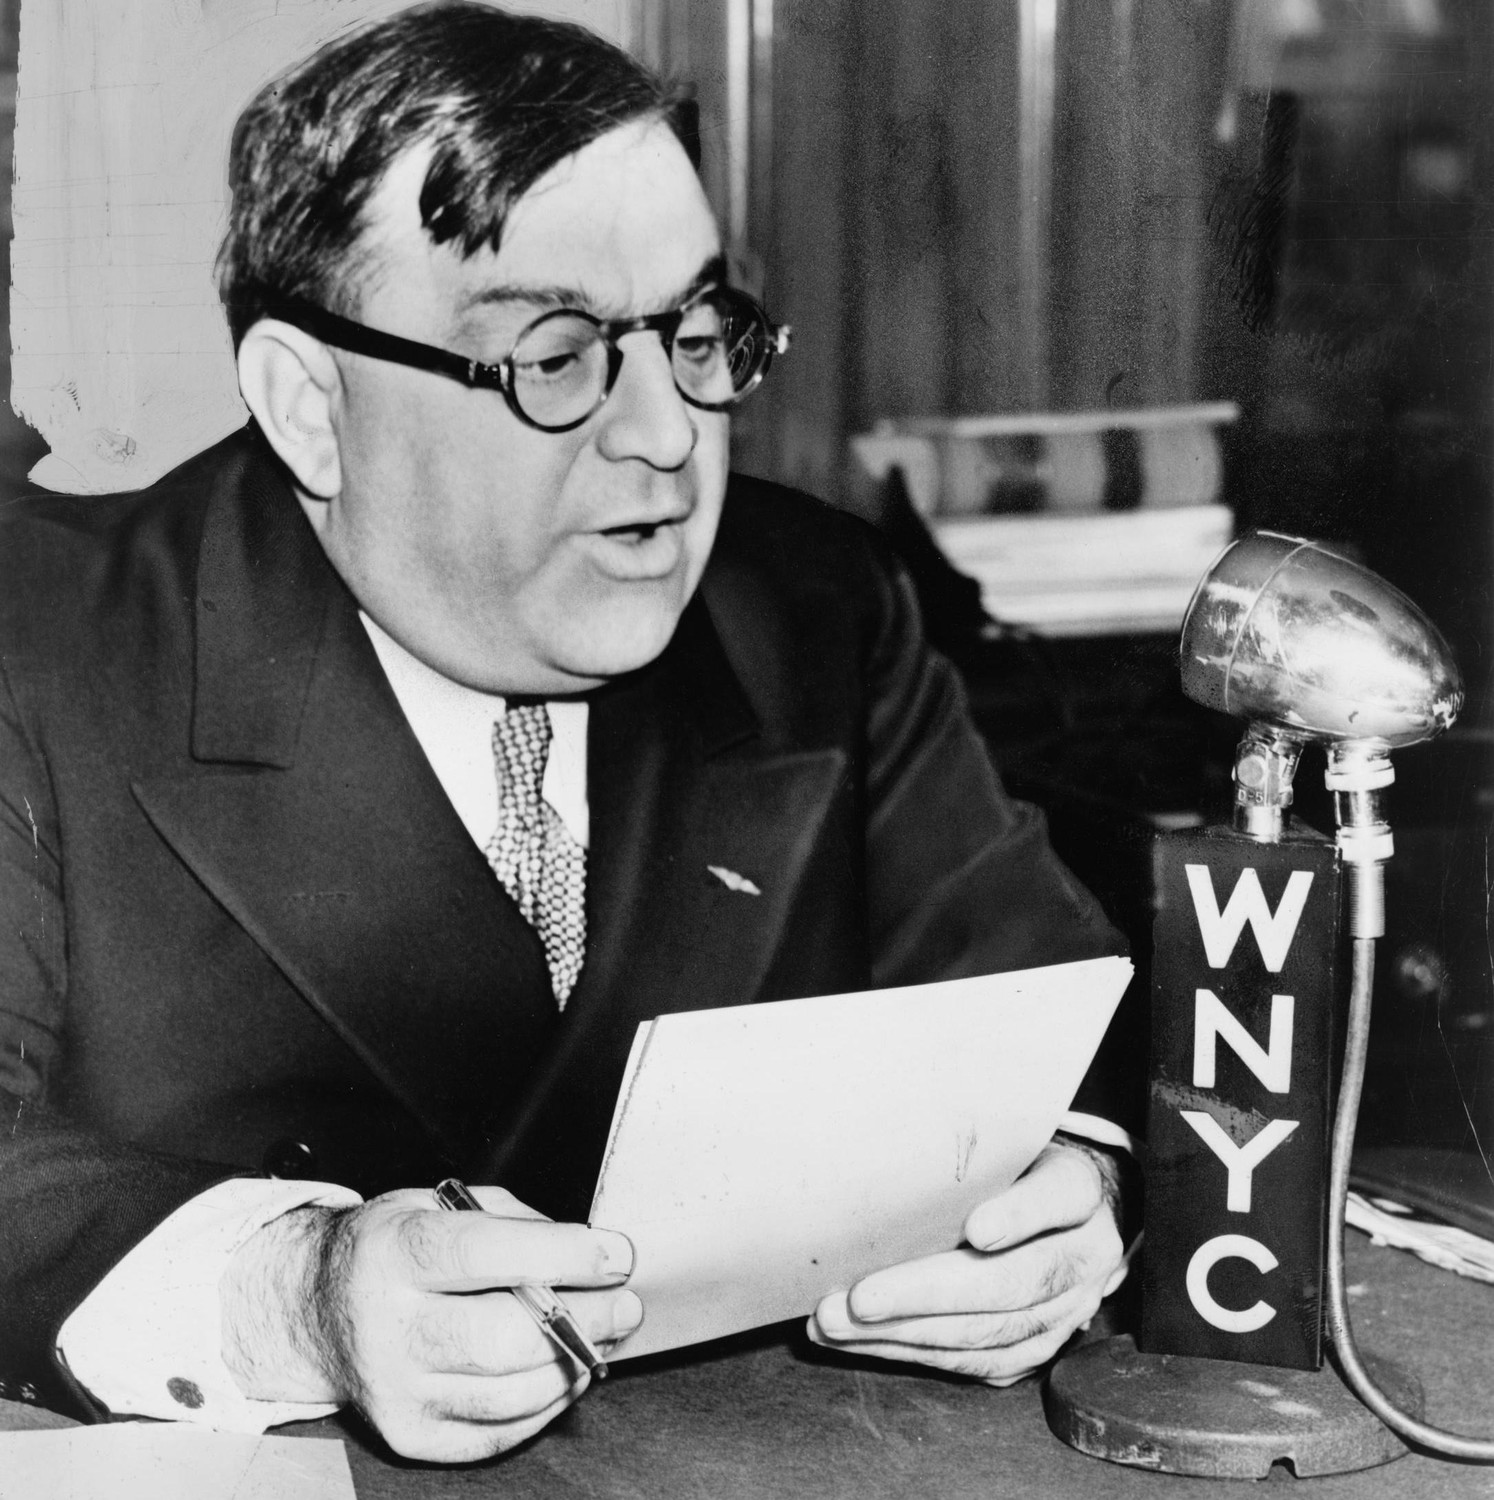 Fiorello La Guardia in 1940.